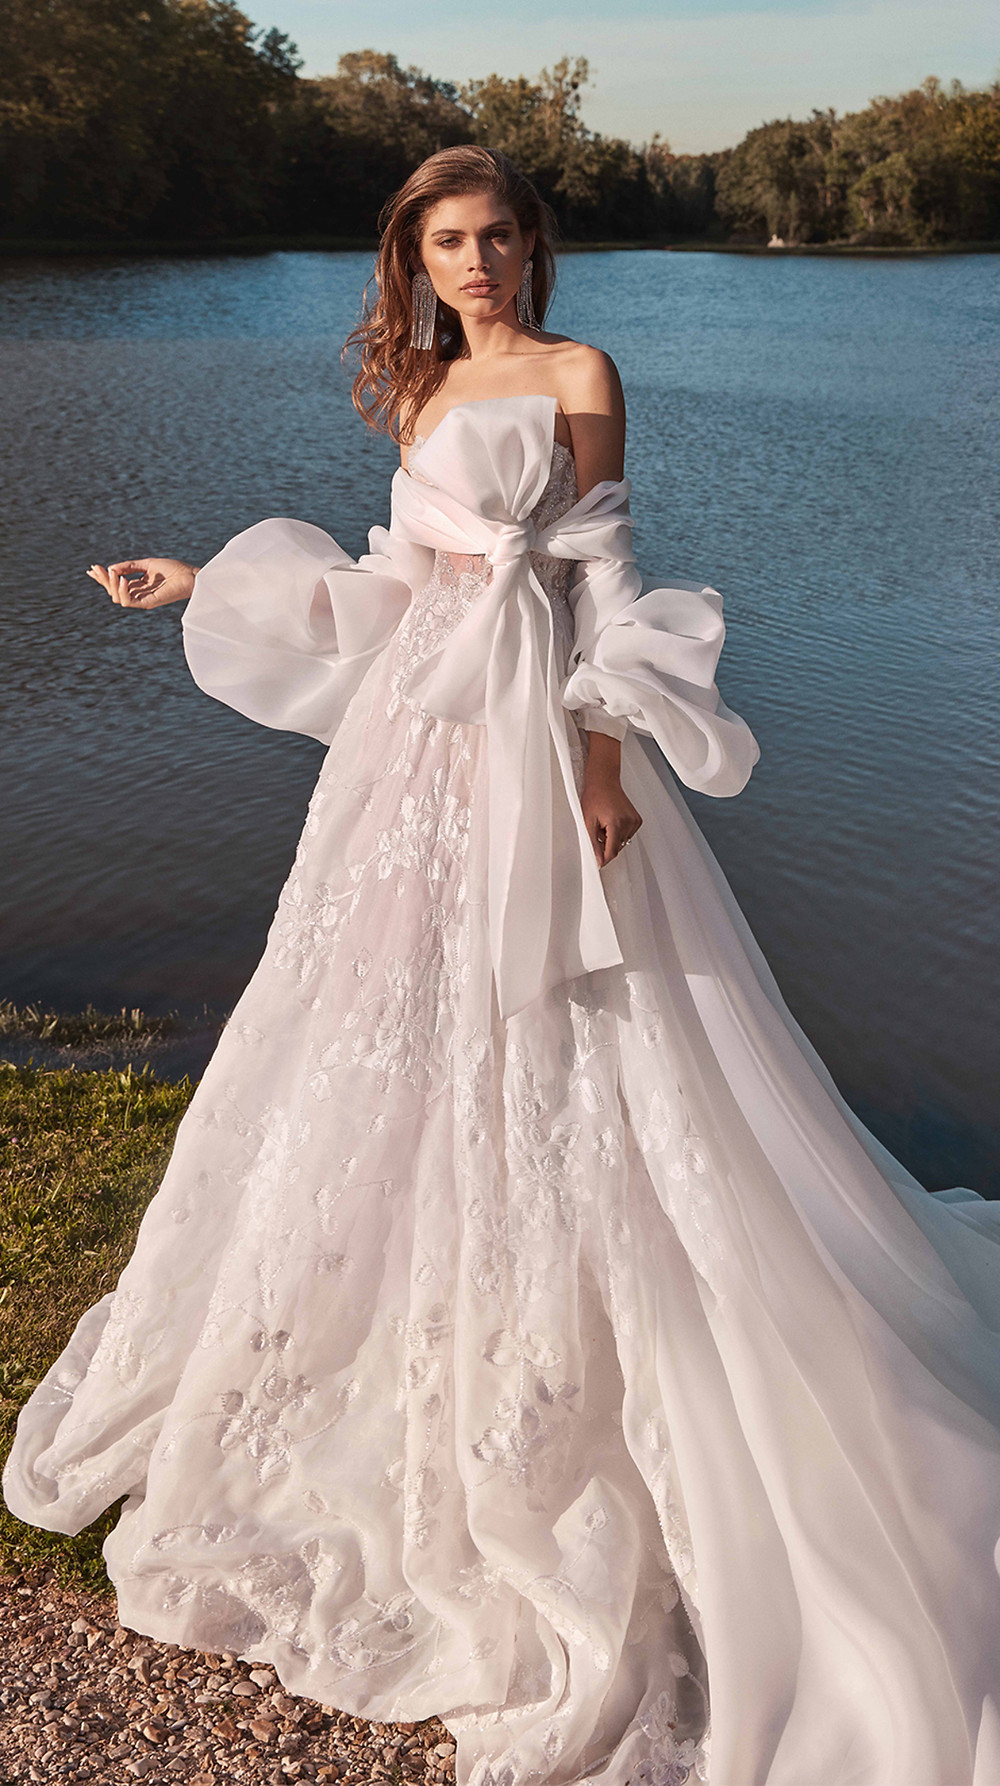 A voluminous coat with balloon sleeves that fasten at the neckline with an oversized statement bow, an elegant add on to any Couture collection wedding gown